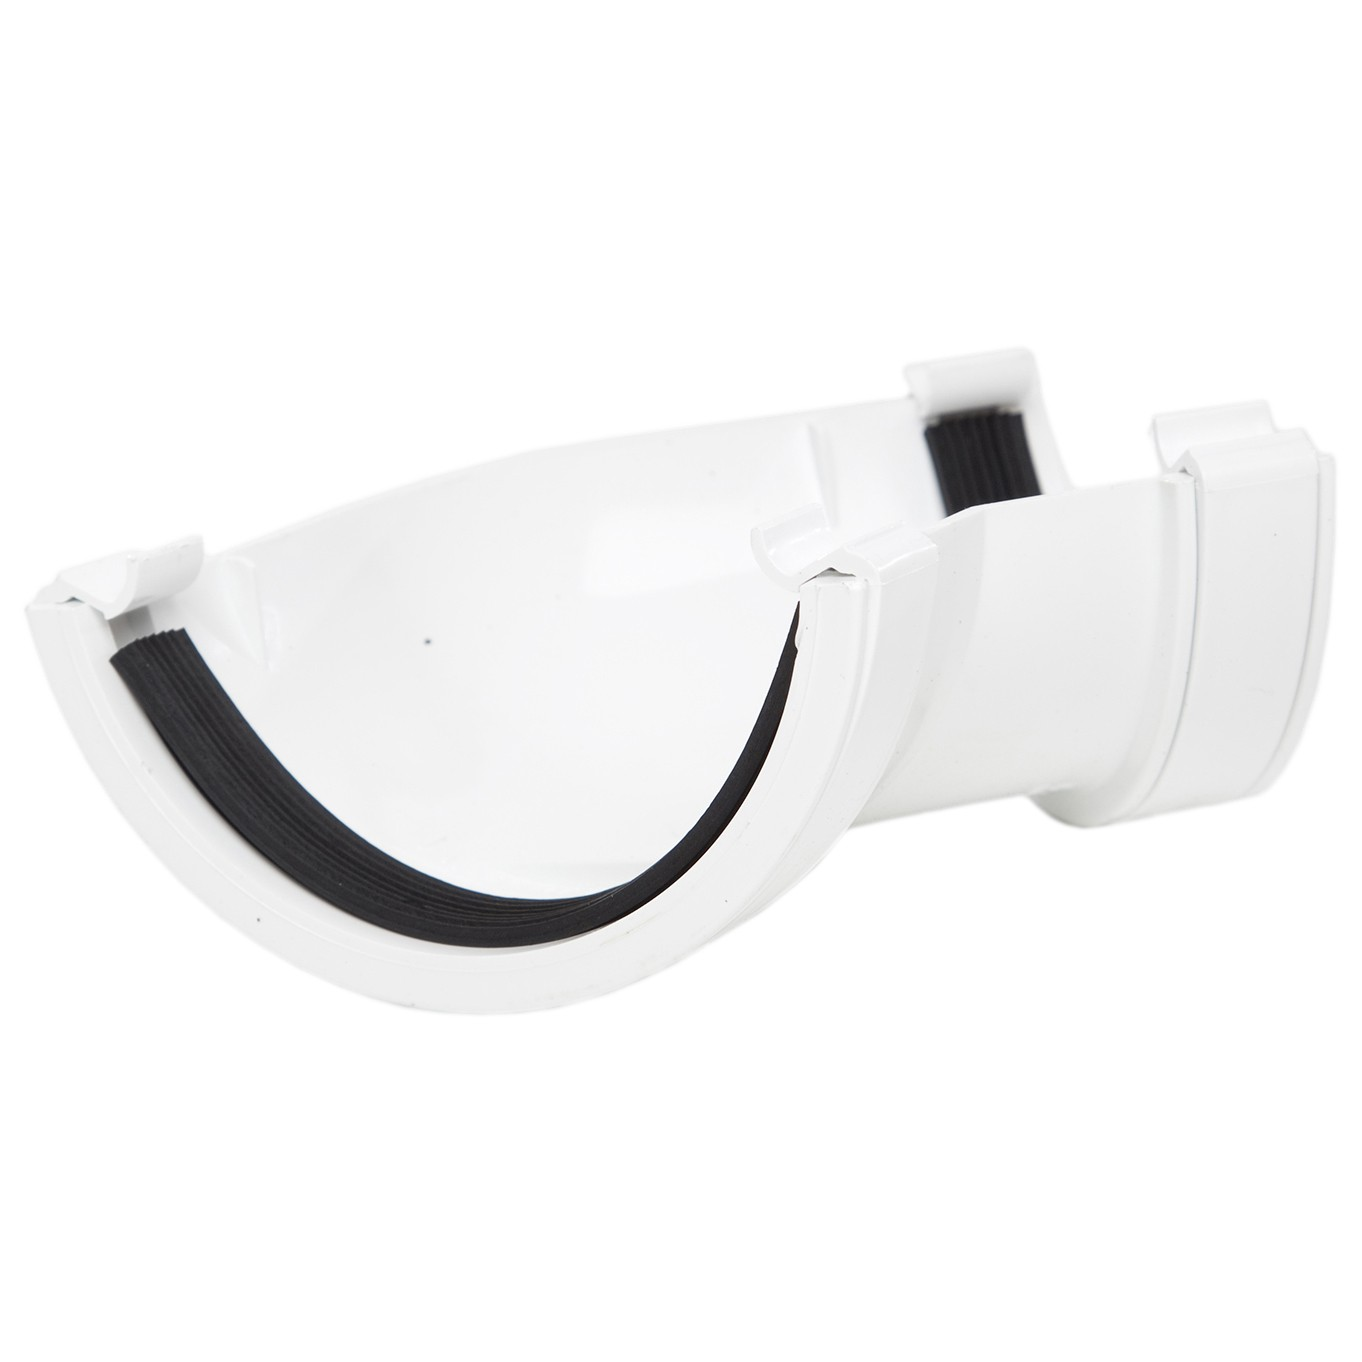 Polypipe 112mm Half Round Gutter 135 Degree Angle - White